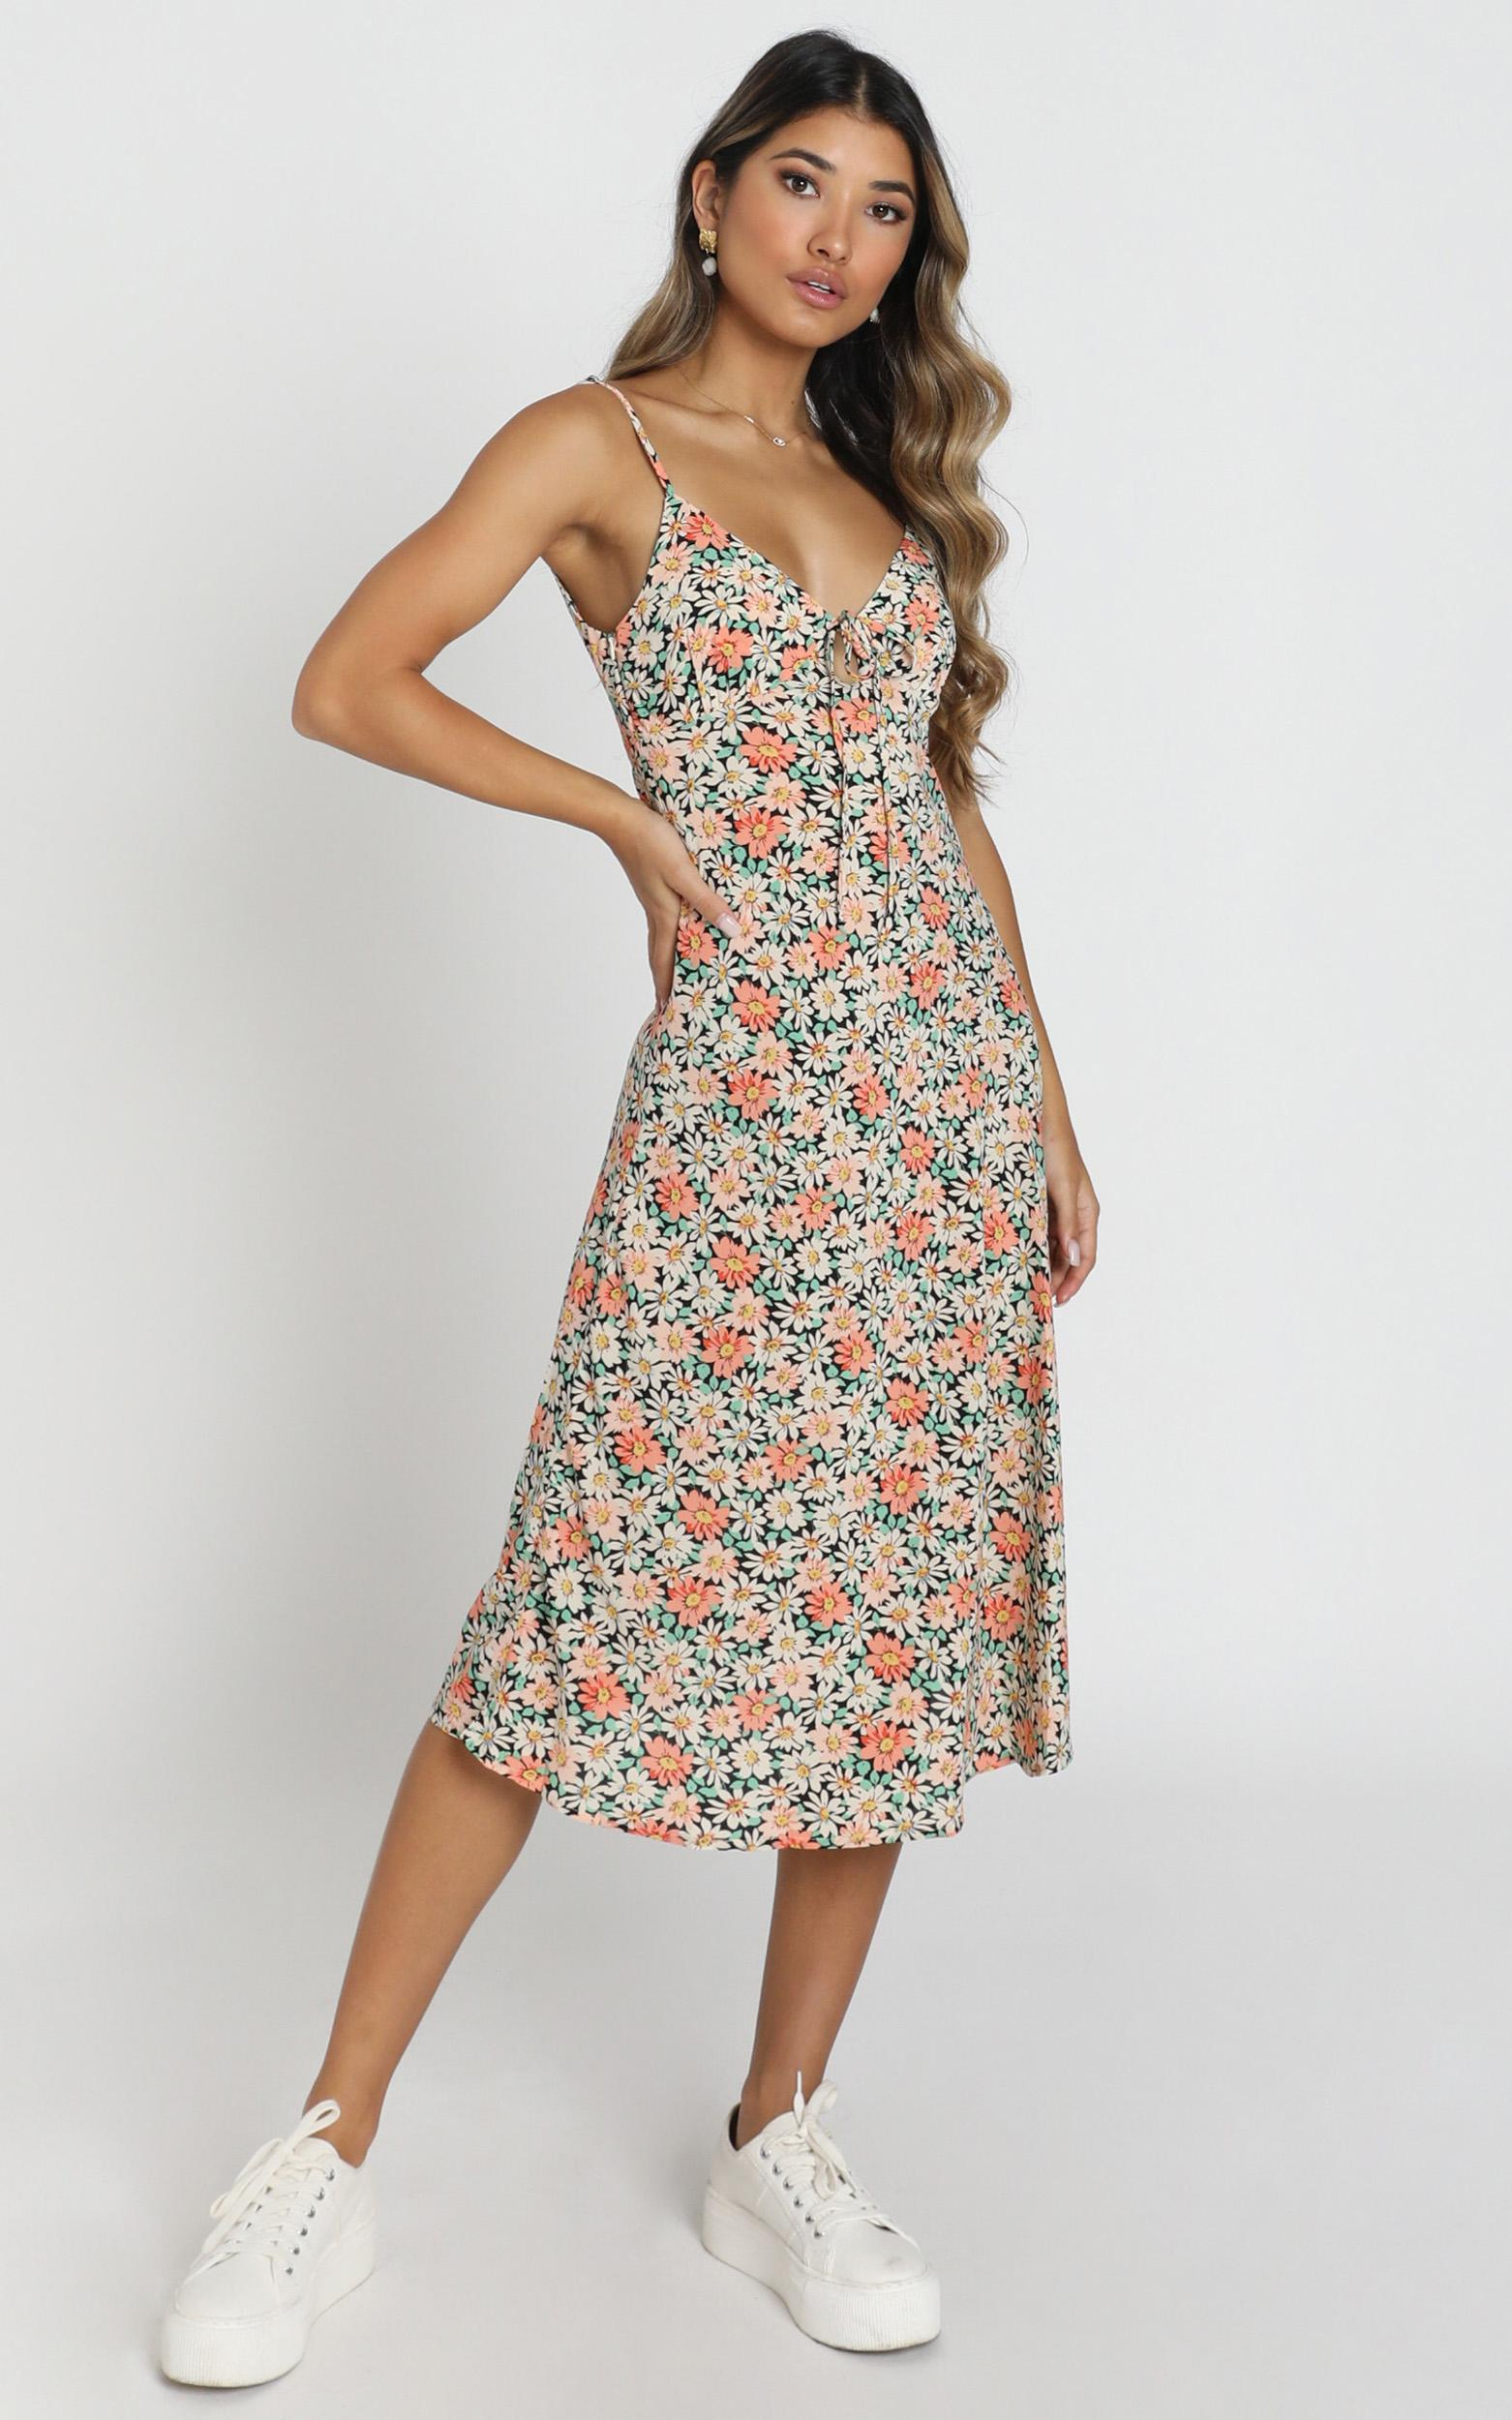 Toss The Dice Dress In Black Floral - 16 (XXL), Black, hi-res image number null